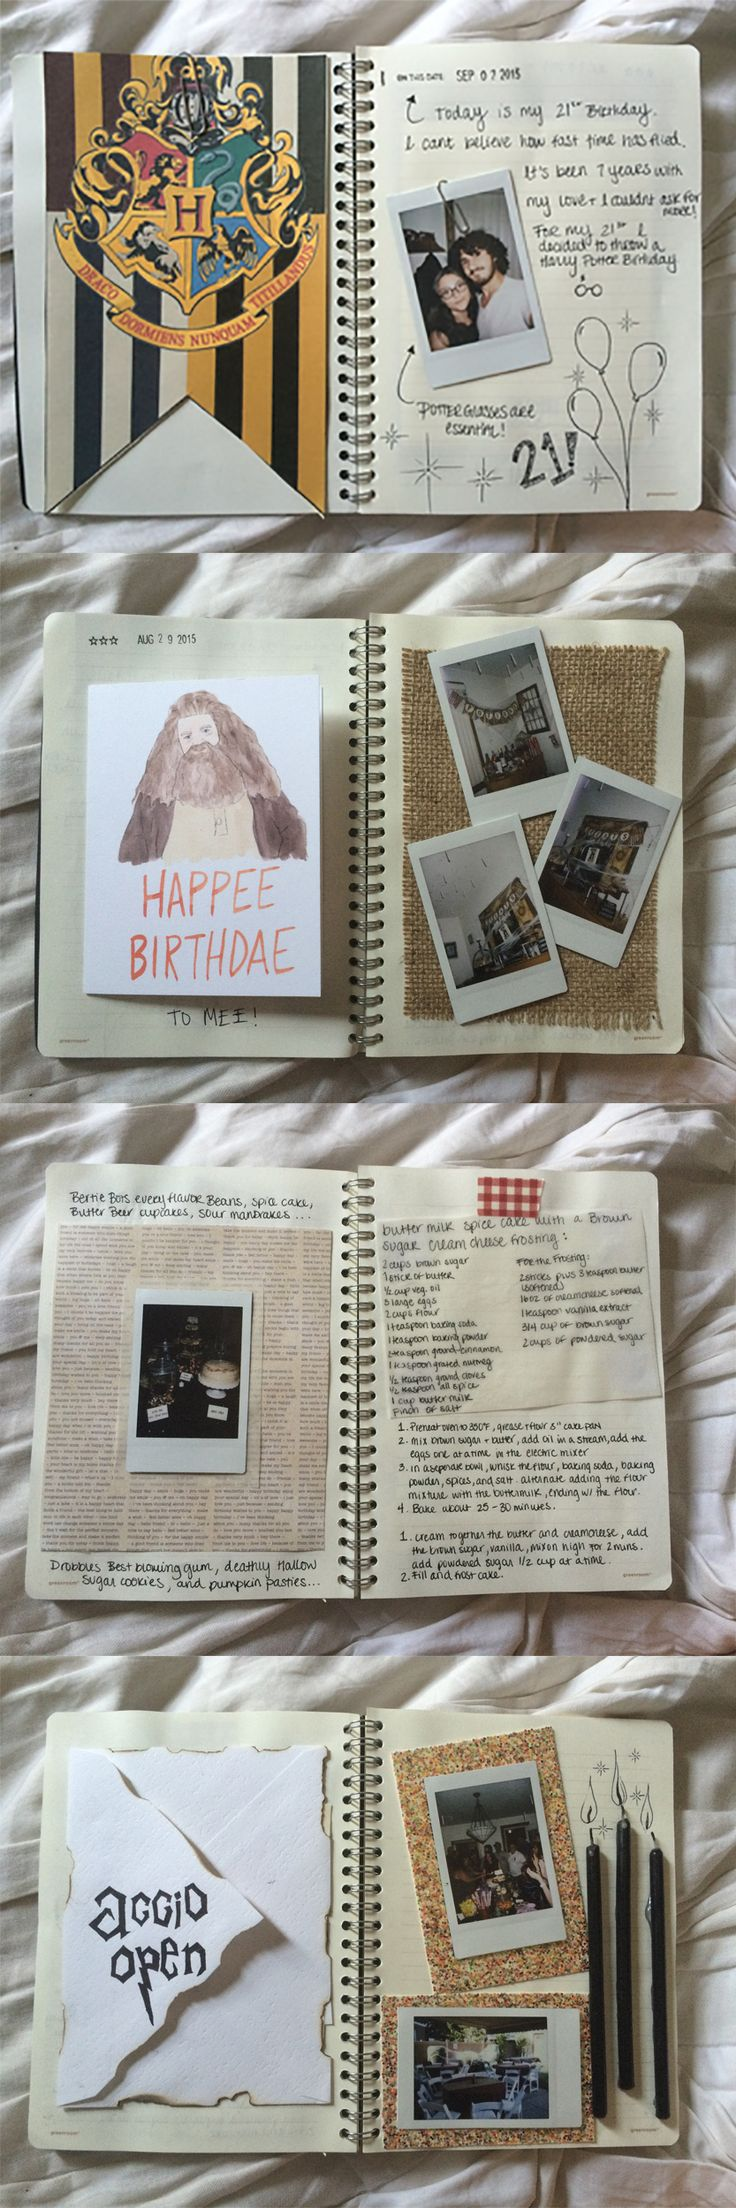 Scrapbook paper england theme - 9 2 15 For My 21st Birthday I Threw A Harry Potter Themed